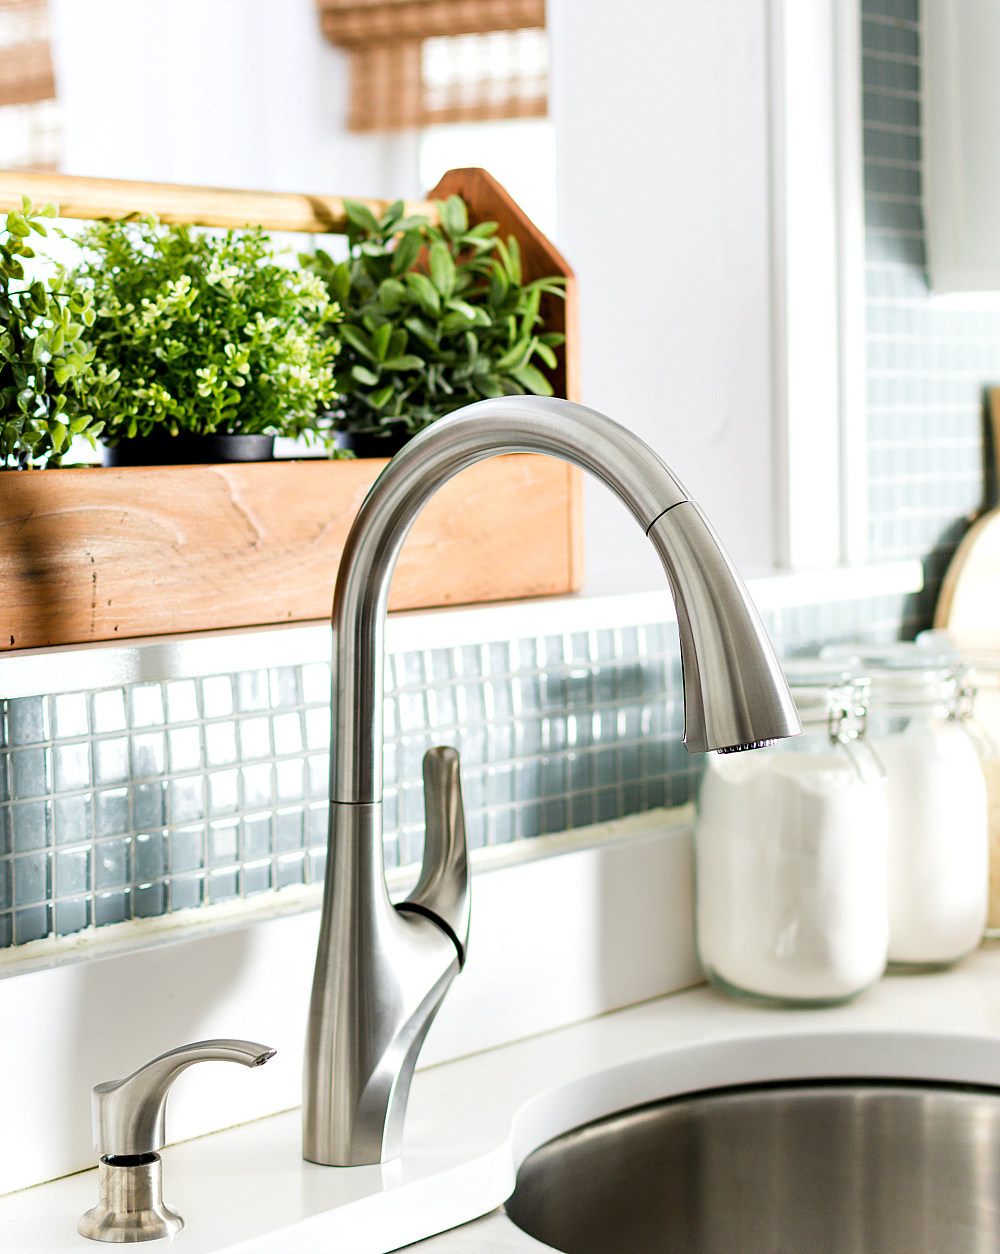 How To Install Kitchen Faucet